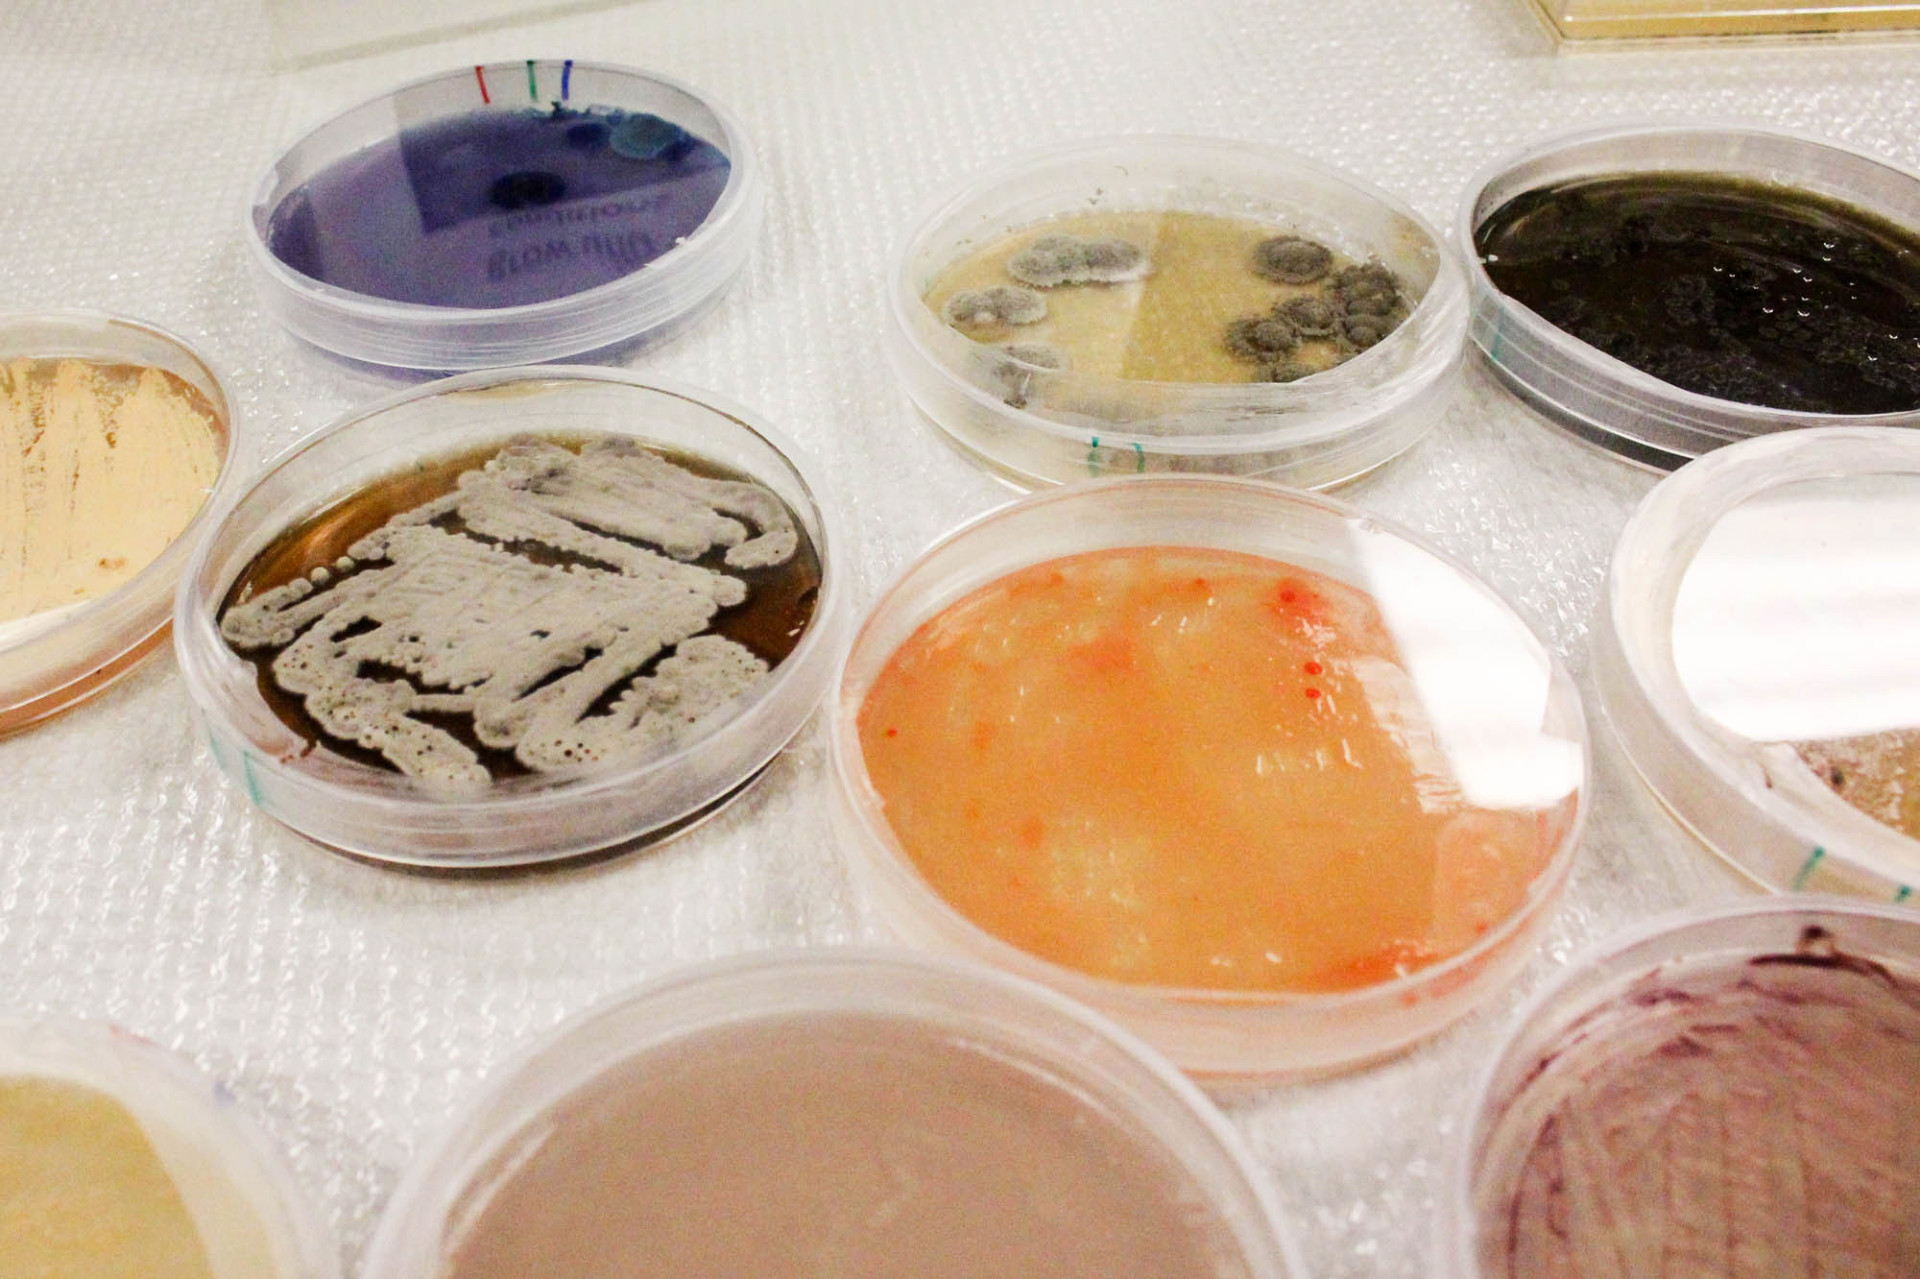 Petri dishes filled with colonies of microorganisms at Marrone Bio Innovations, in Davis, Calif.